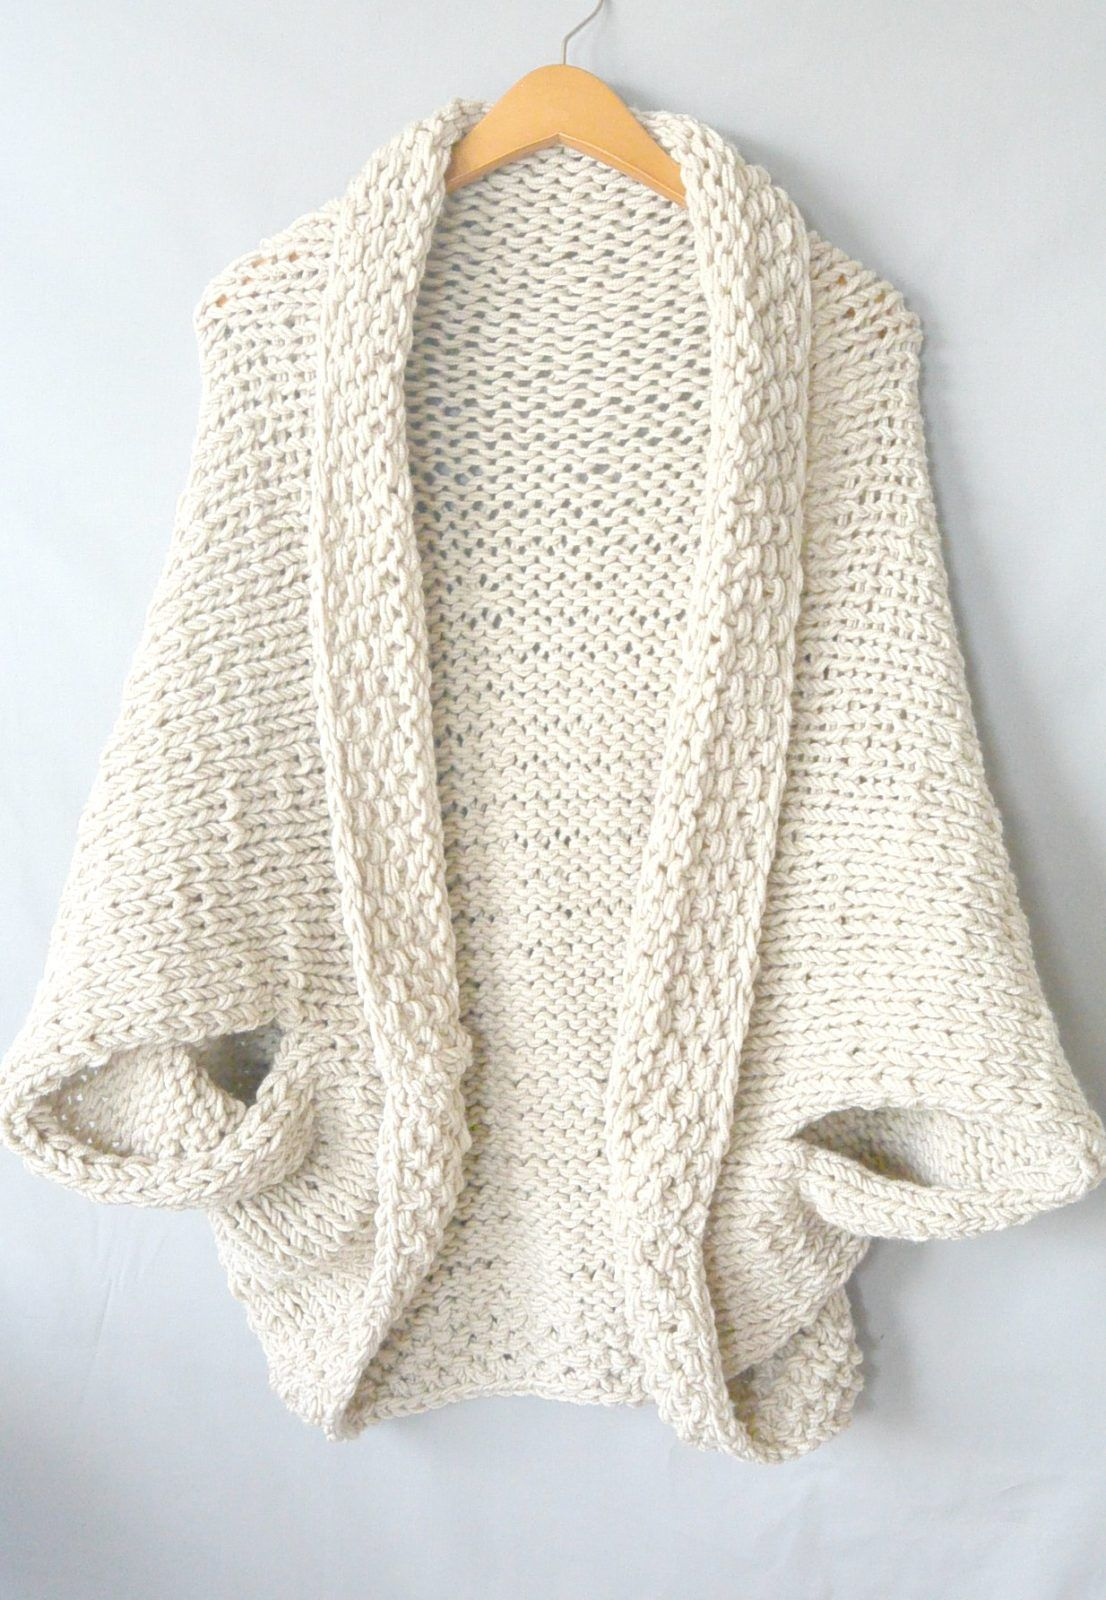 6ad07f4d73e32 How To Knit A Super Chunky Pullover The ultimate knitting accomplishment.  KNITTING. A. SWEATER. (cue dramatic music) The truth is that most sweater  patterns ...